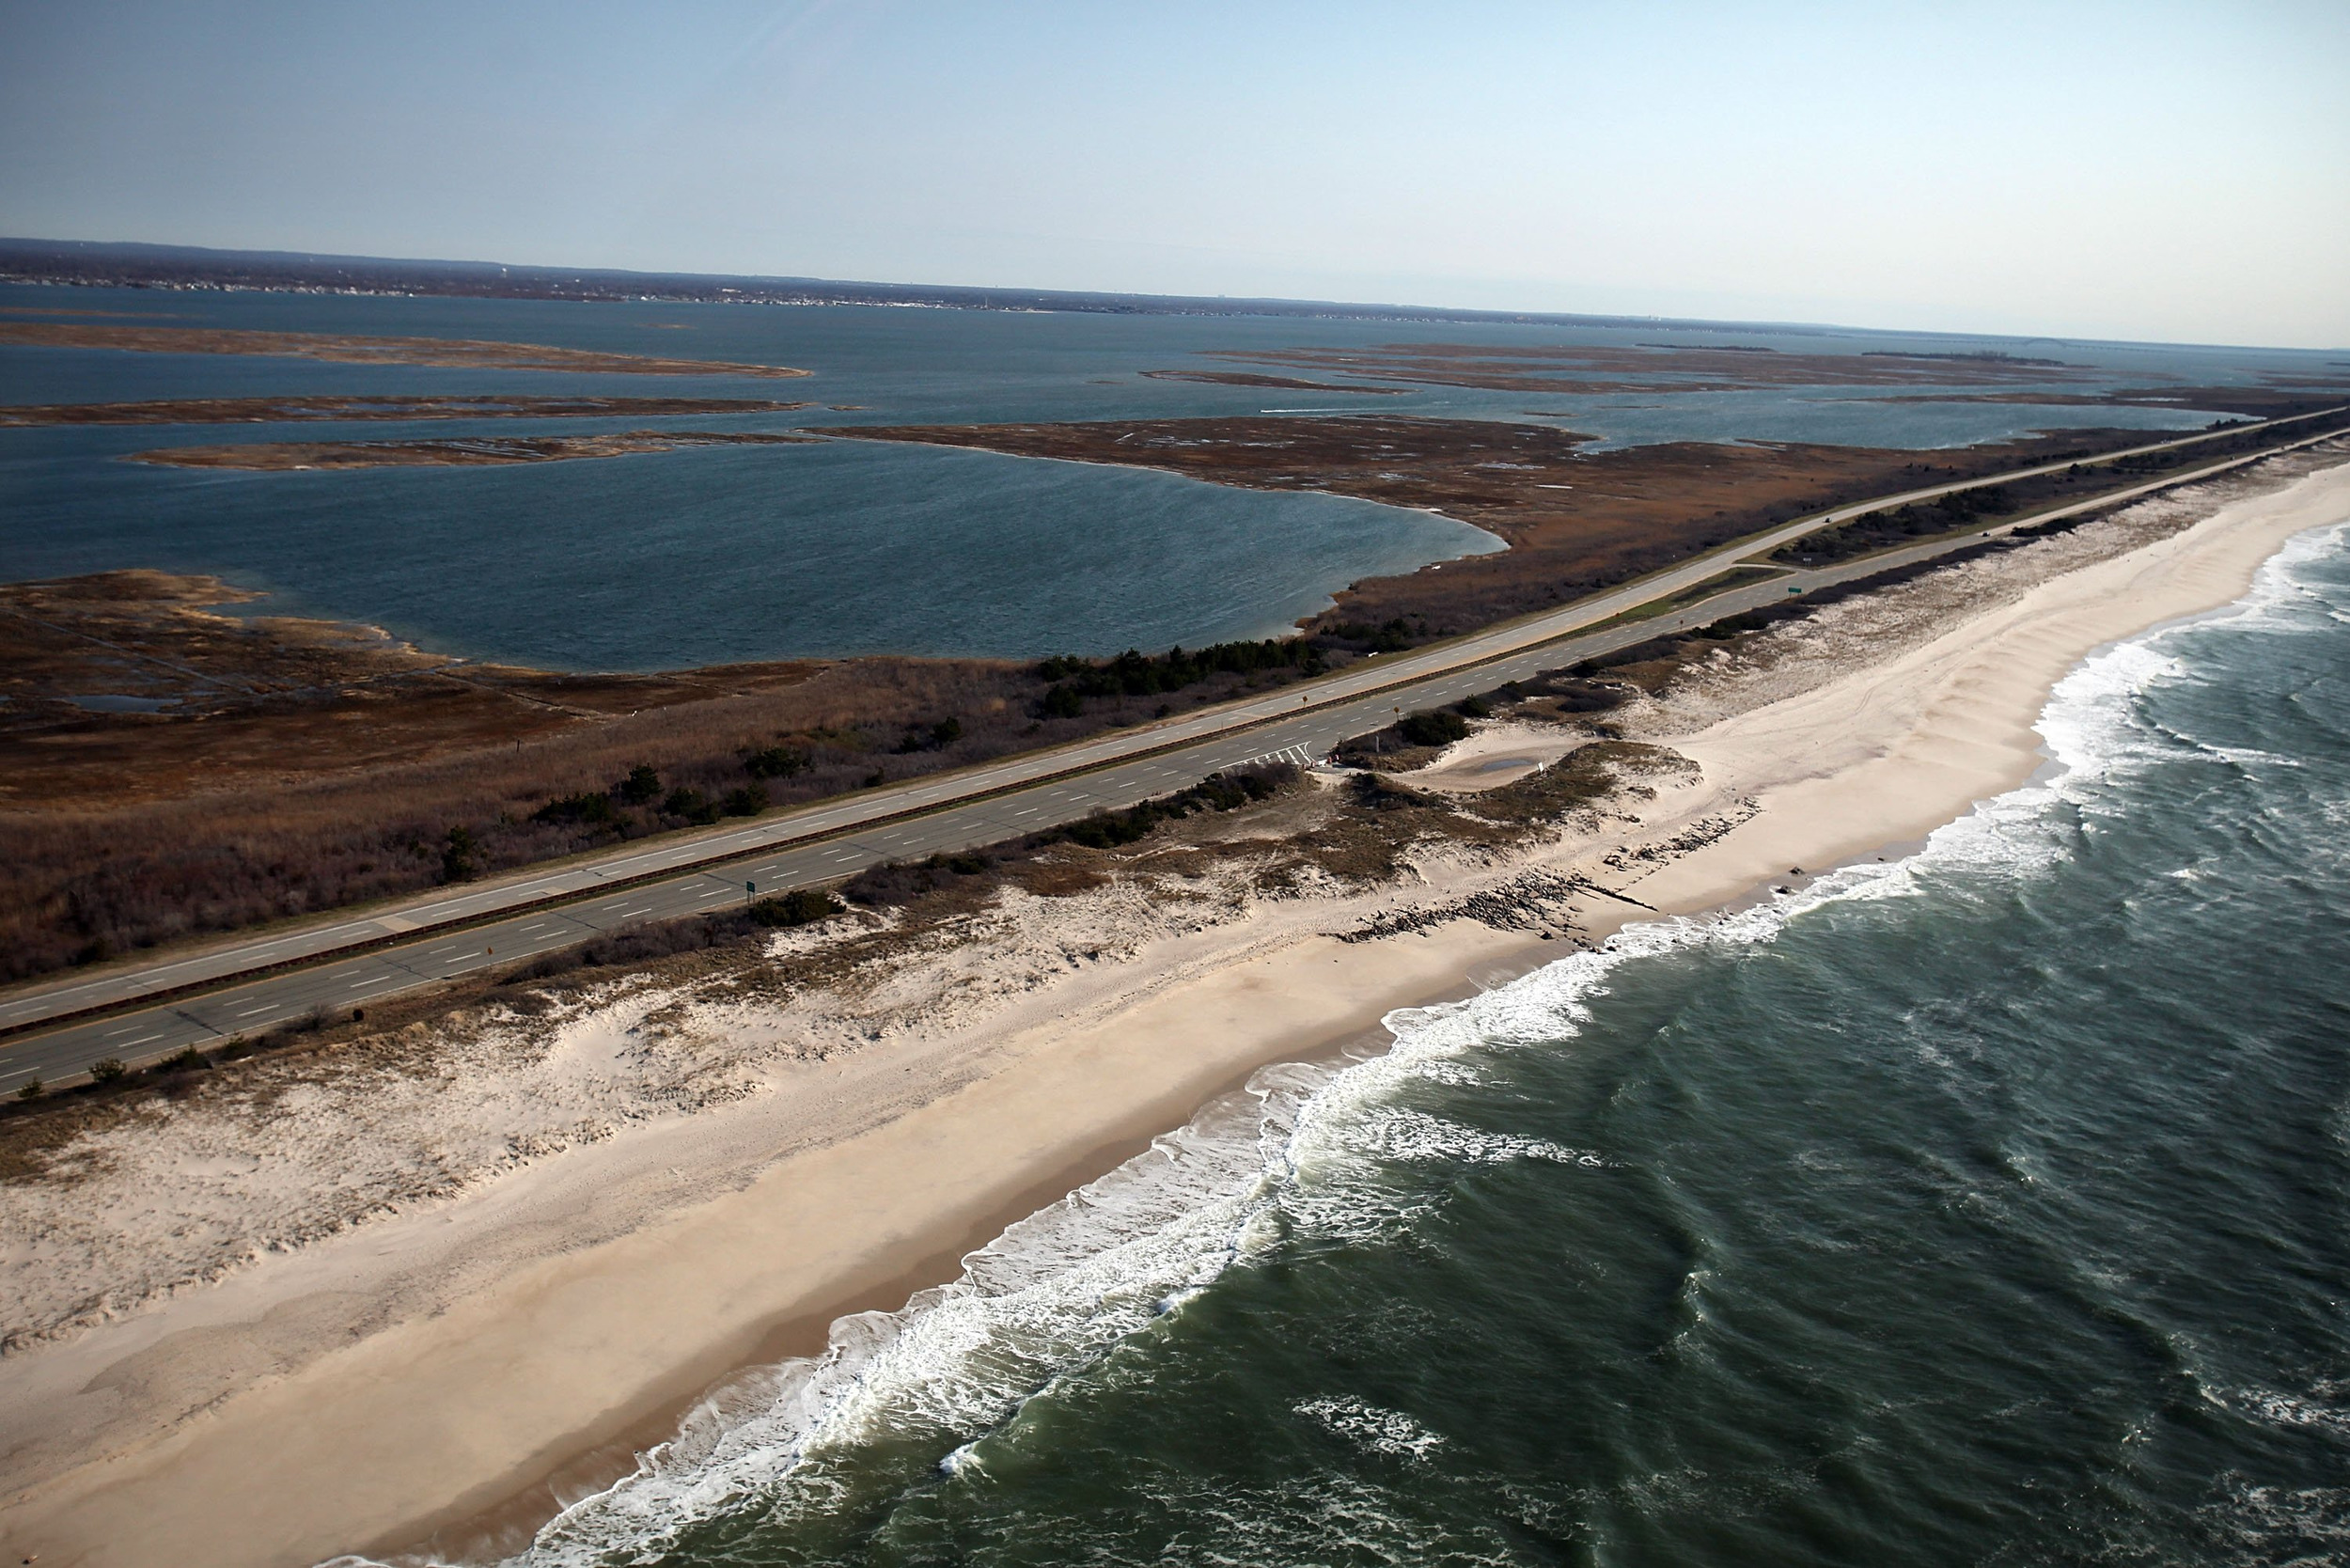 Another-victim-ID'd-in-unsolved-Gilgo-Beach-murders-on-Long-Island